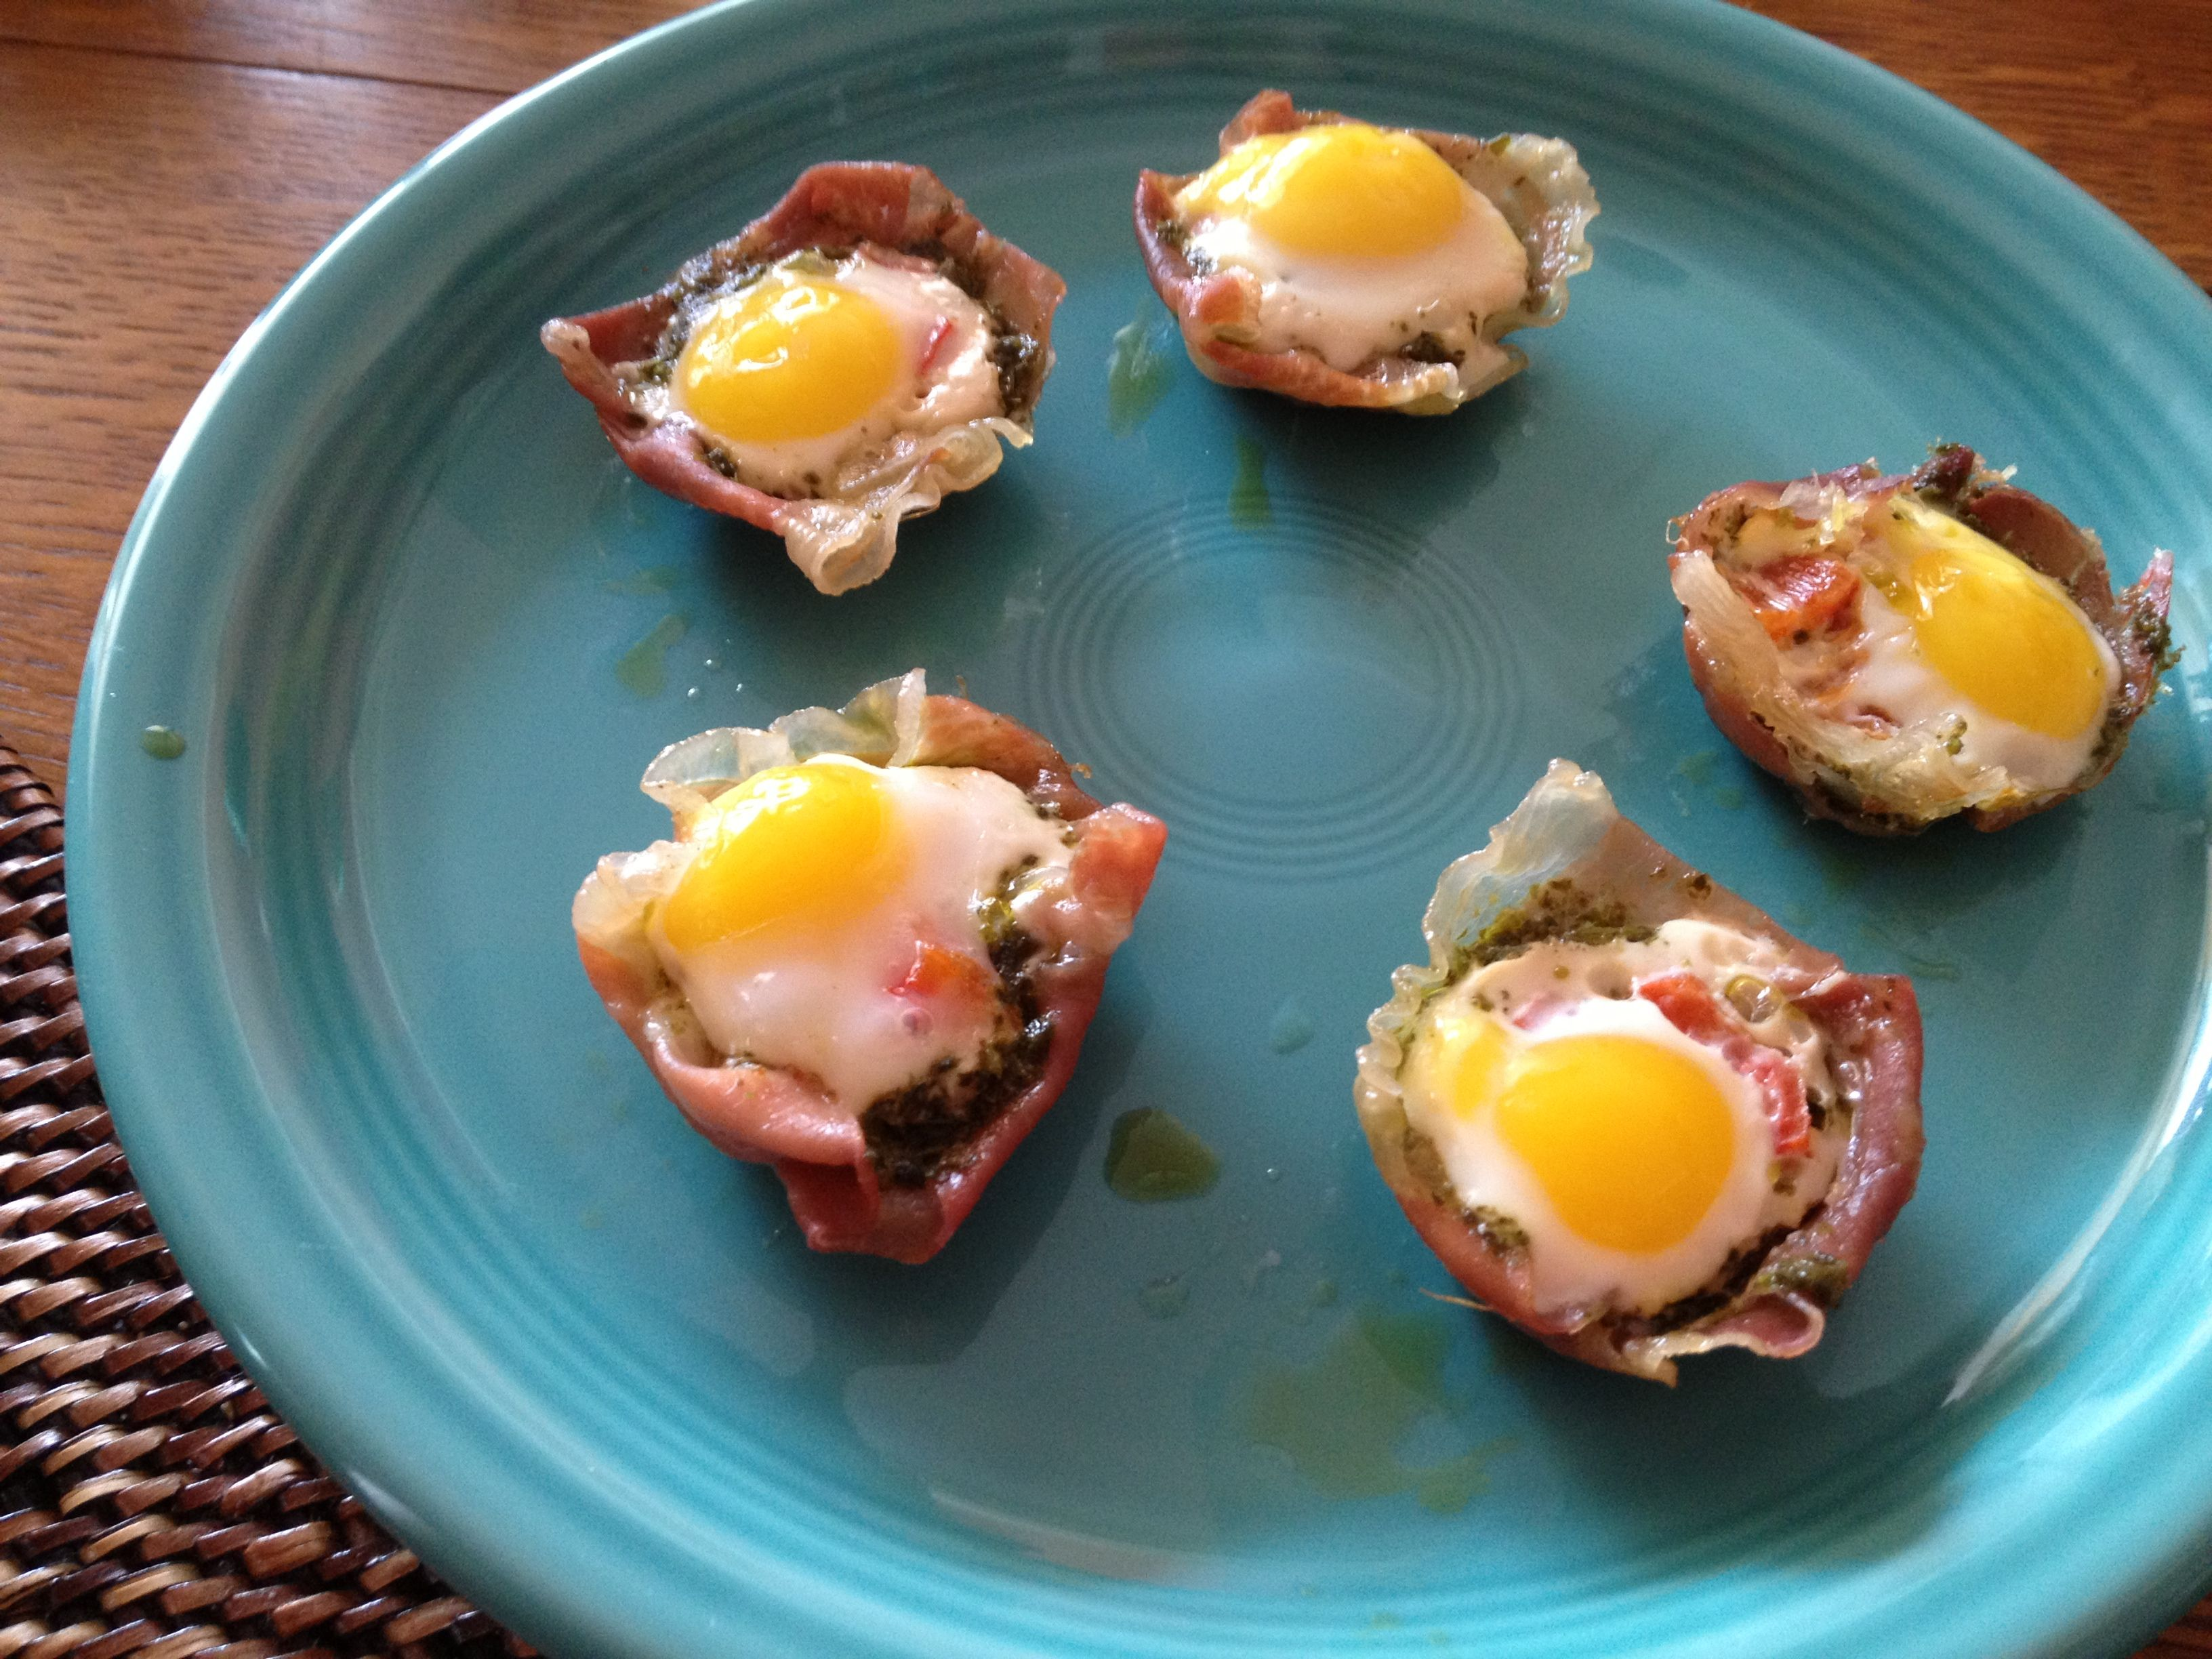 Prosciutto cups with pesto, roasted red pepper and quail eggs.  Bake in a mini muffin pan @ 350 X 15 min.